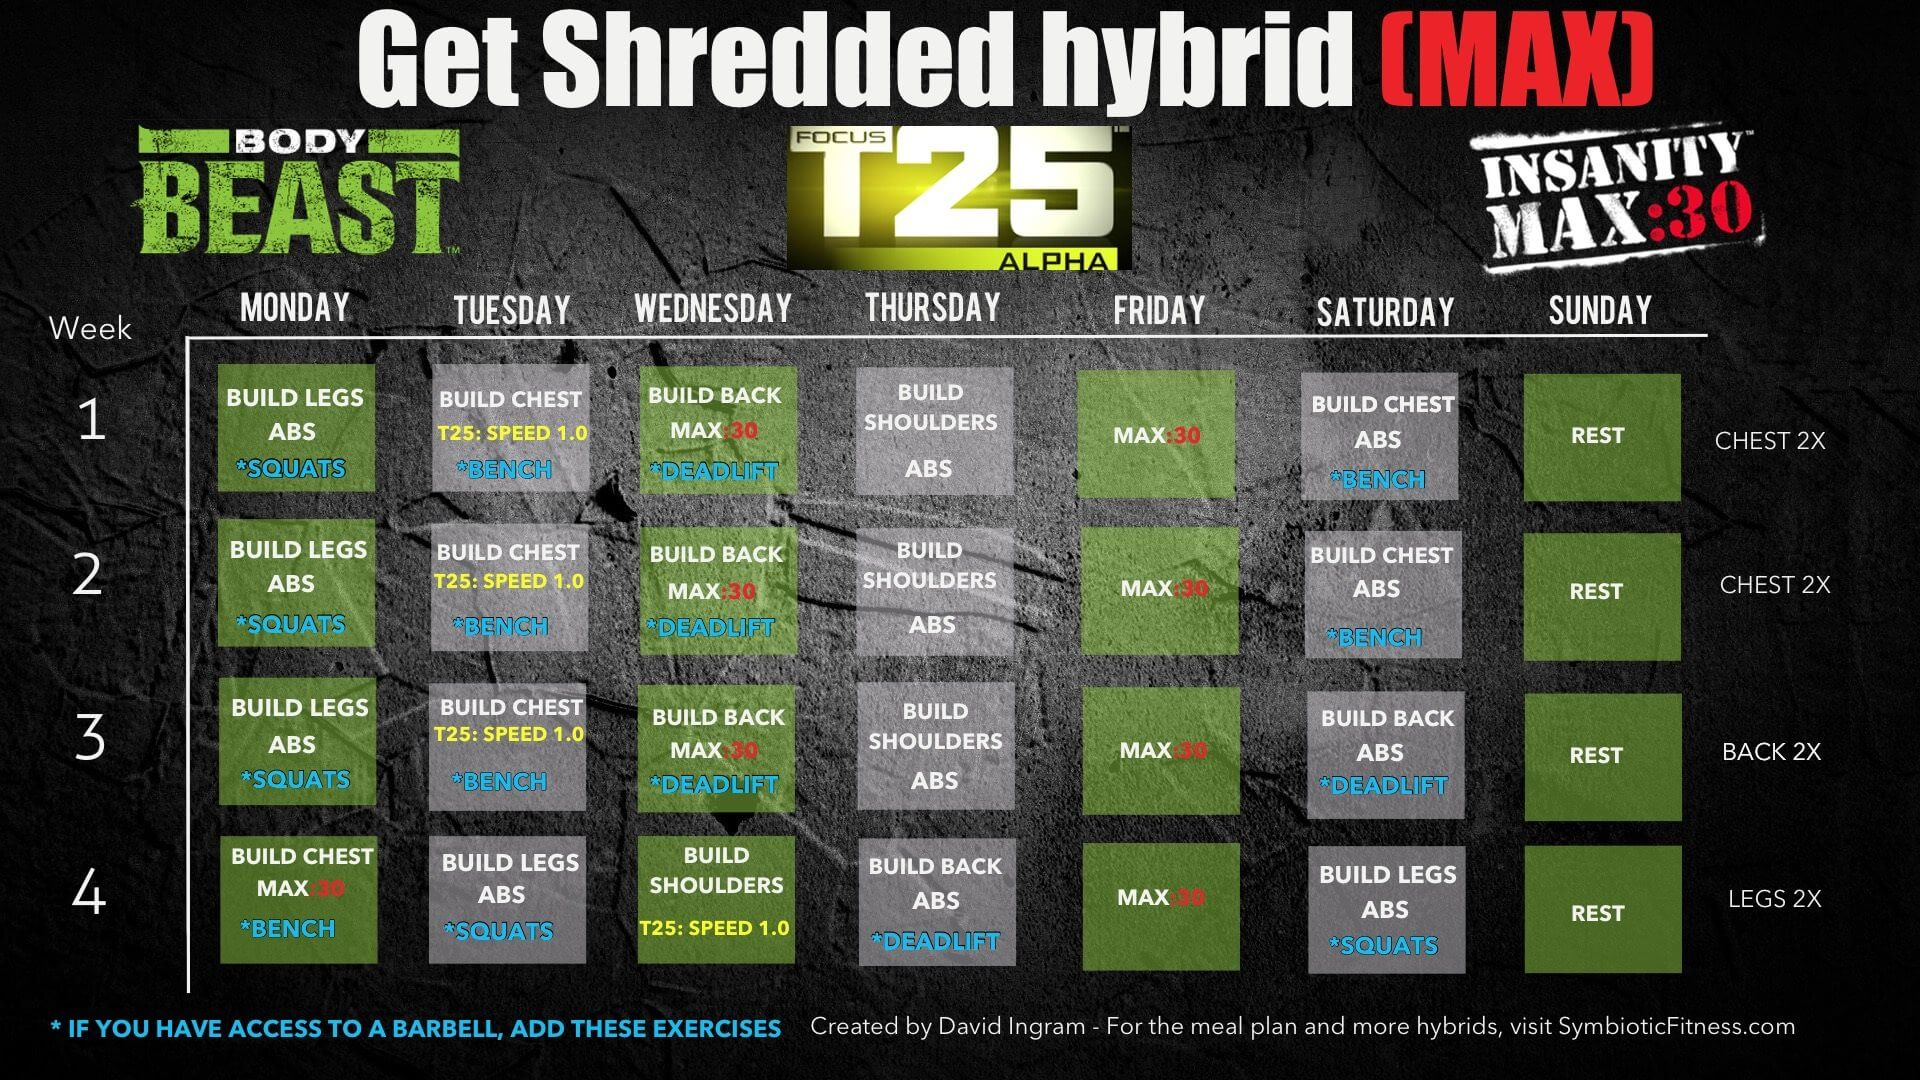 Bodybeast Hybrid With Insanity Max 30 And T25  Get Shredded within Insanity Max 30 Body Beast Hybrid